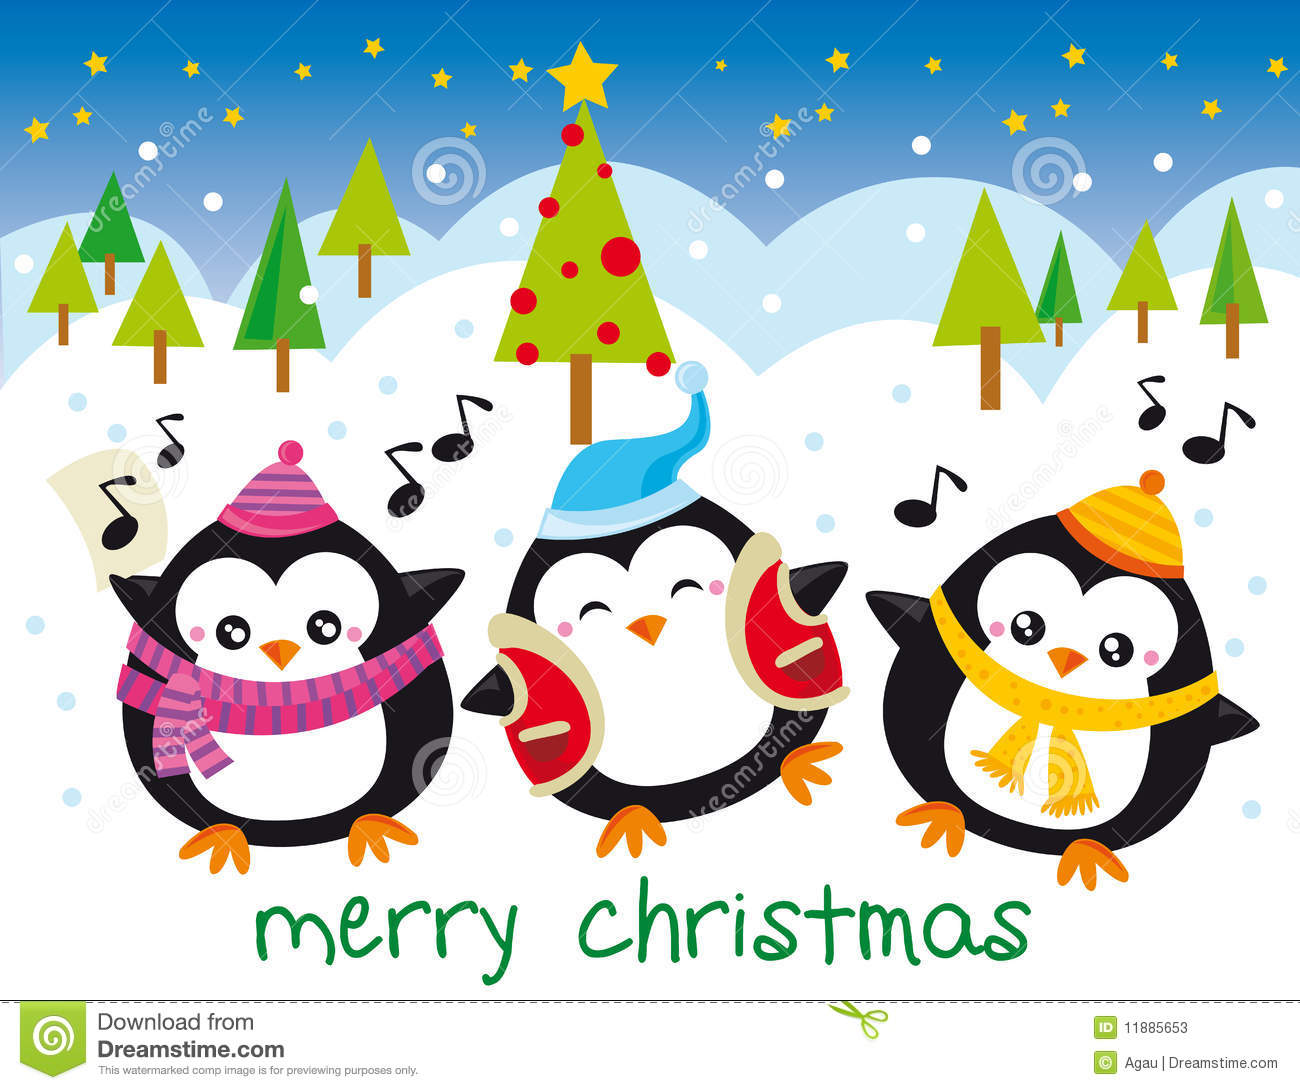 Christmas Stock Illustrations – 694,288 Christmas Stock ...